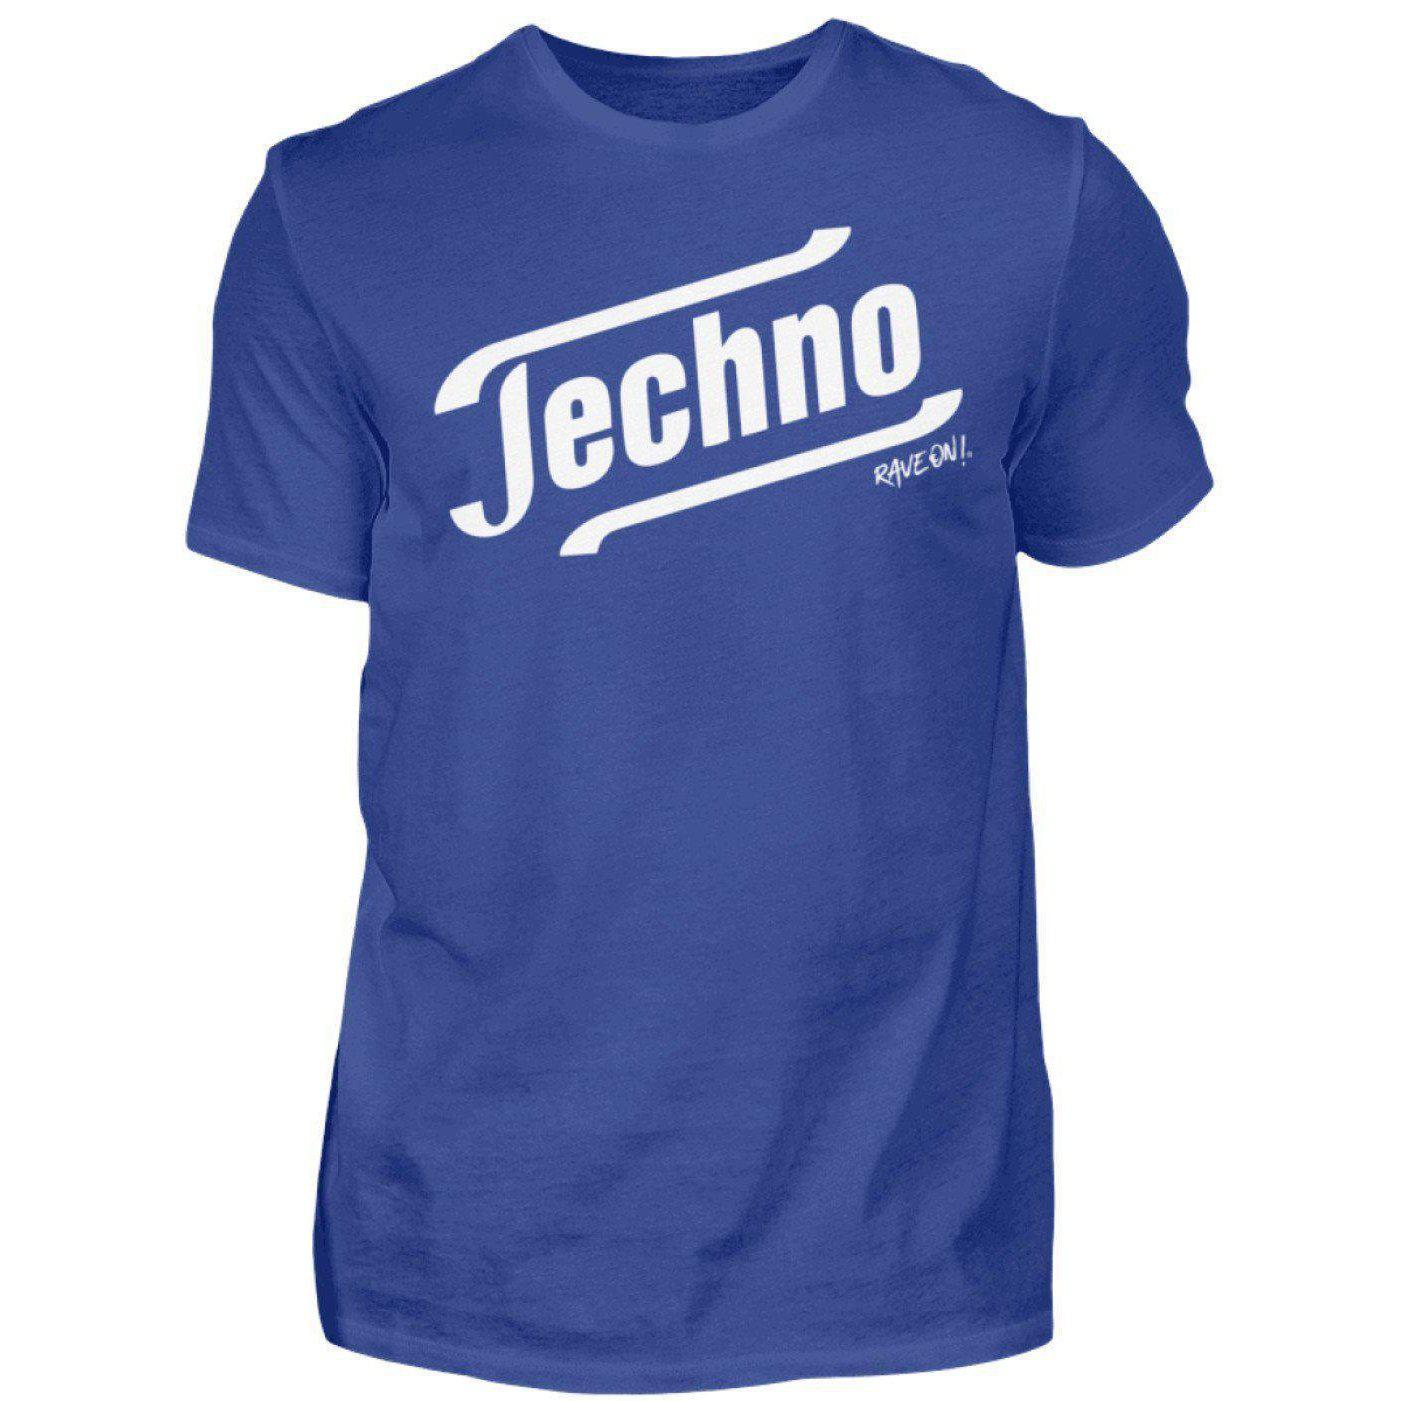 Techno - Tempo Rave On!® T-Shirt - Herren Shirt Herren Basic T-Shirt Royalblau / S - Rave On!® der Club & Techno Szene Shop für Coole Junge Mode Streetwear Style & Fashion Outfits + Sexy Festival 420 Stuff